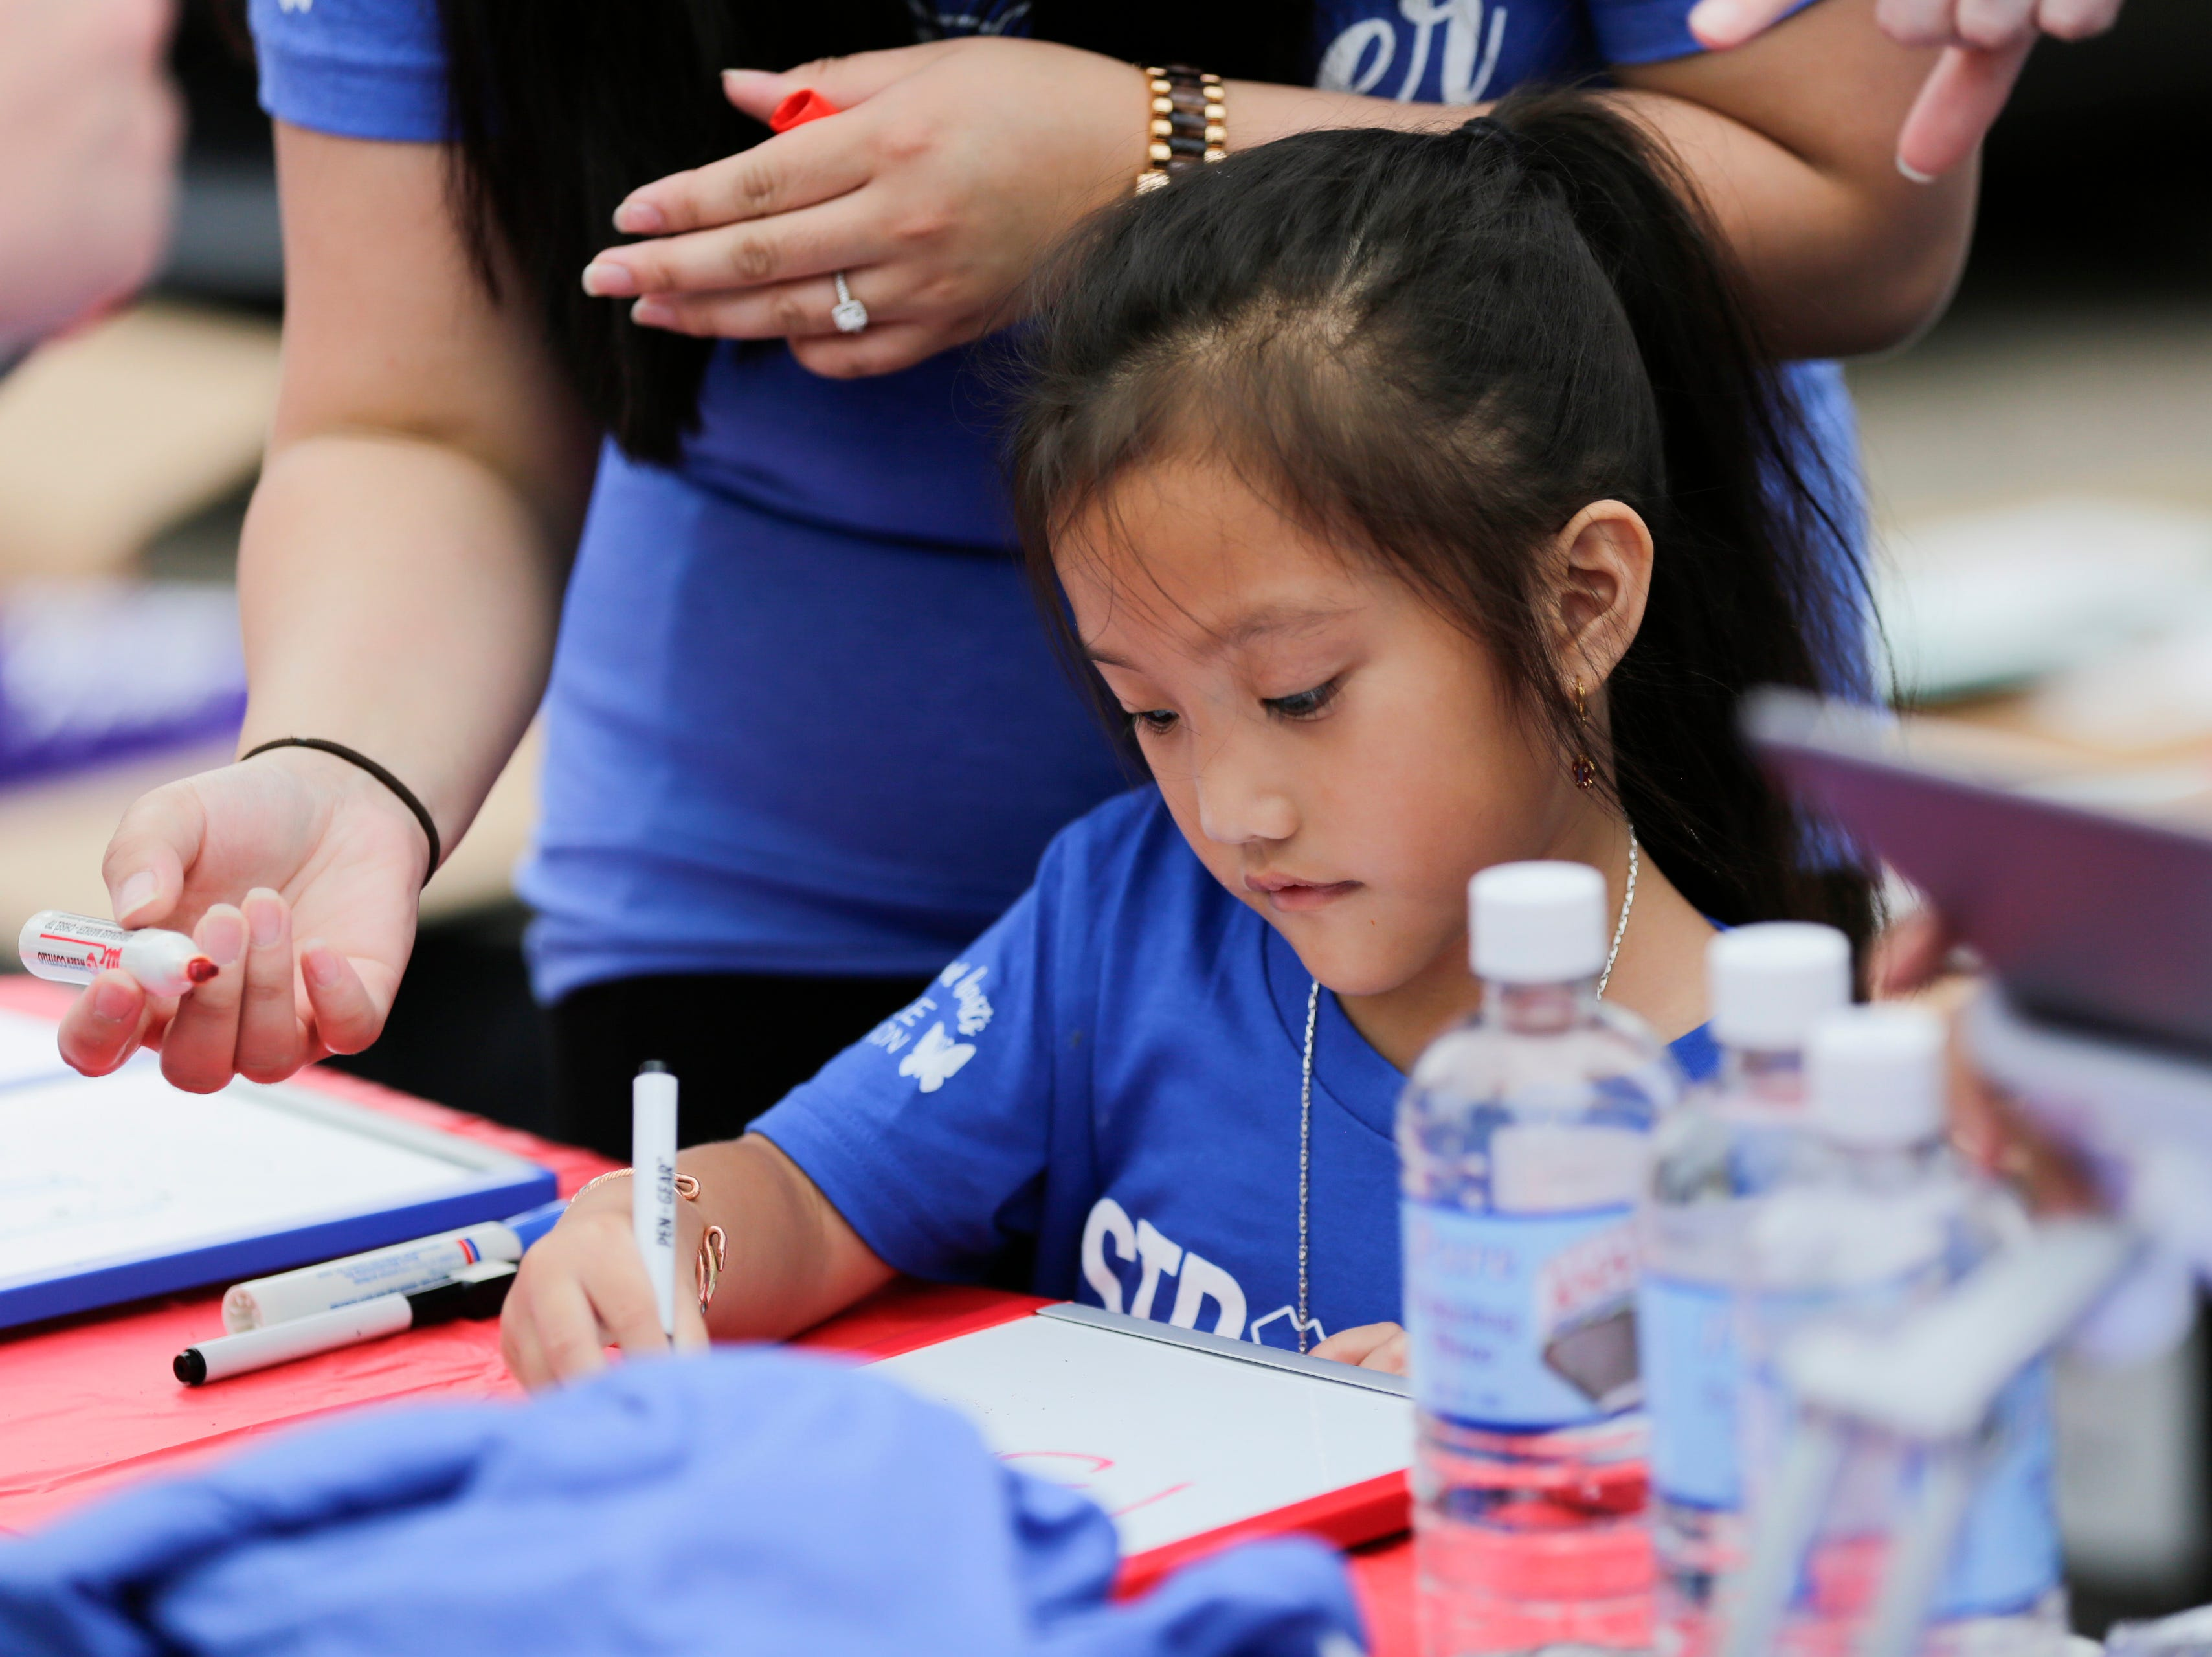 Suabyi Khang, 5, records the number of red shirts that have been sold during the National Night Out event put on by the Wisconsin Rapids Police Department in the Crossview Church parking lot in Wisconsin Rapids Tuesday, August 7, 2018. Red, blue and purple shirts were sold as part of a friendly competition between local law enforcement and fire fighters to raise money for the Fly High Memorial Playground.